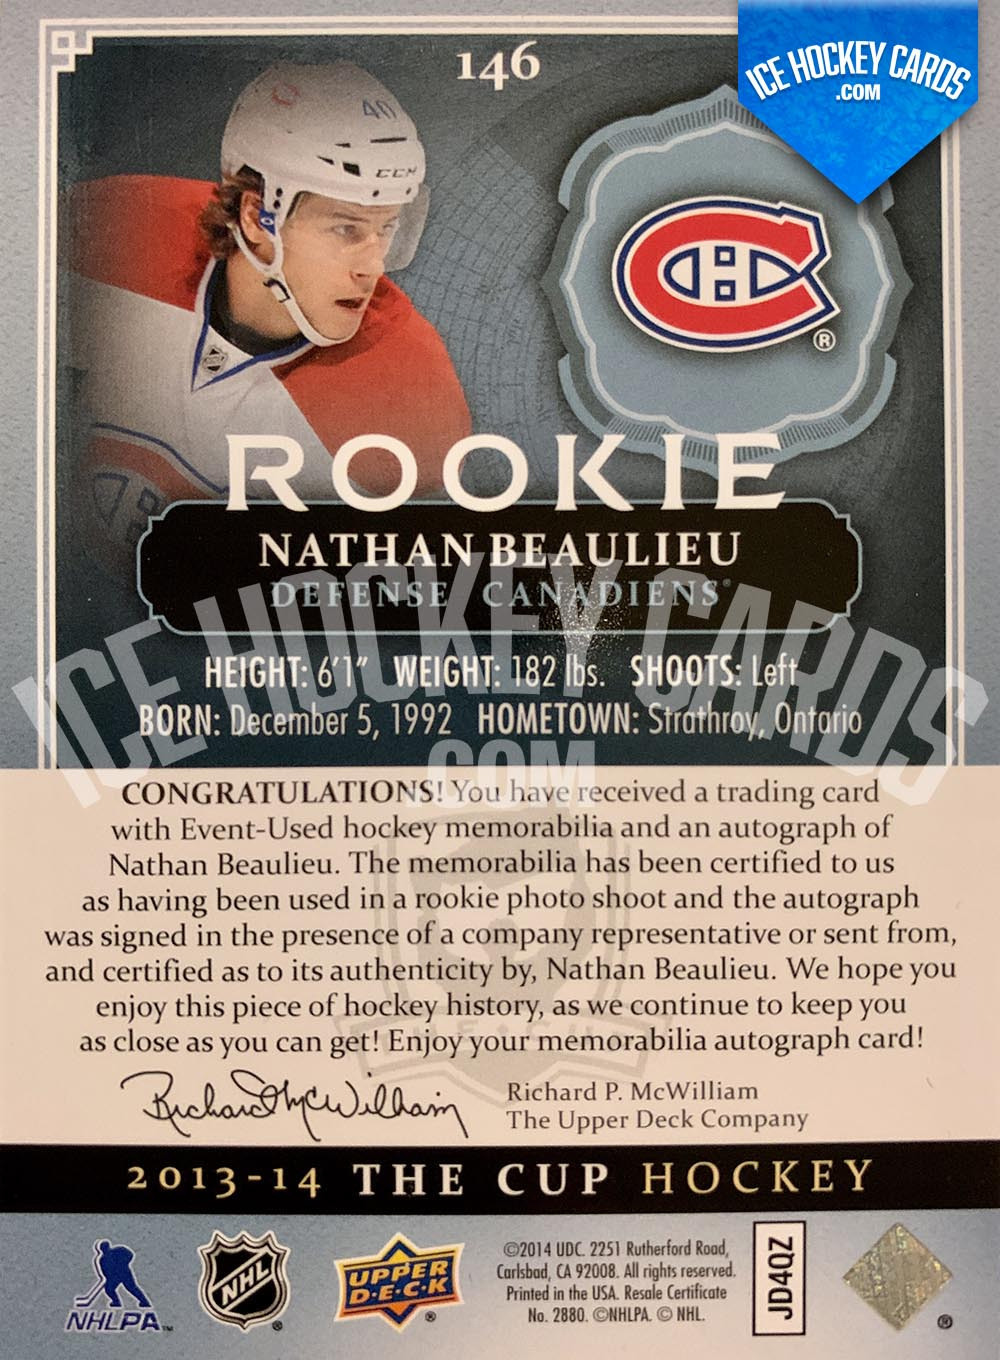 Upper Deck - The Cup 2013-14 - Nathan Beaulieu Rookie Auto Patch RC back